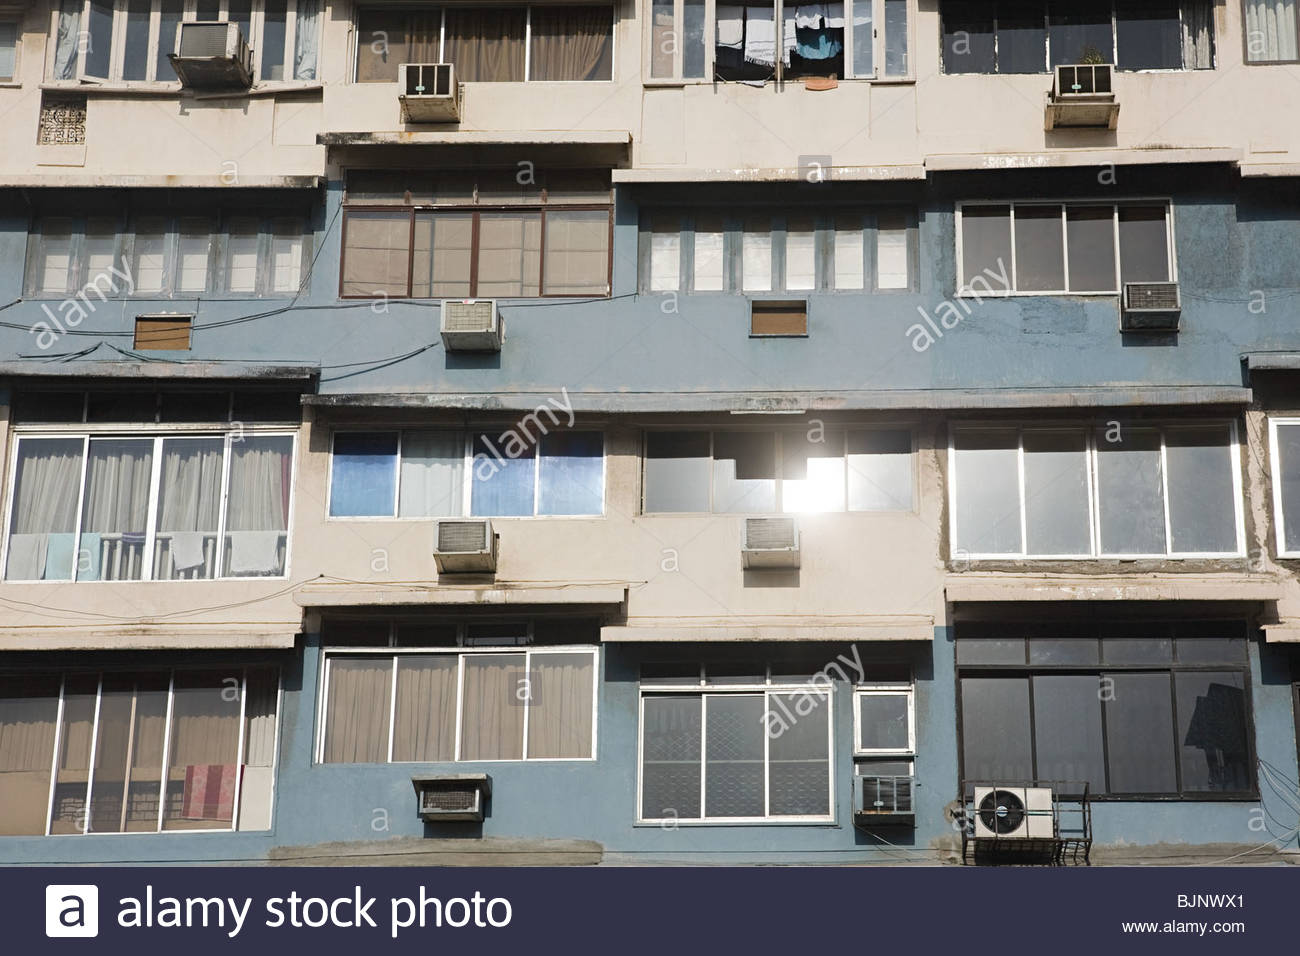 Facade of a building - Stock Image